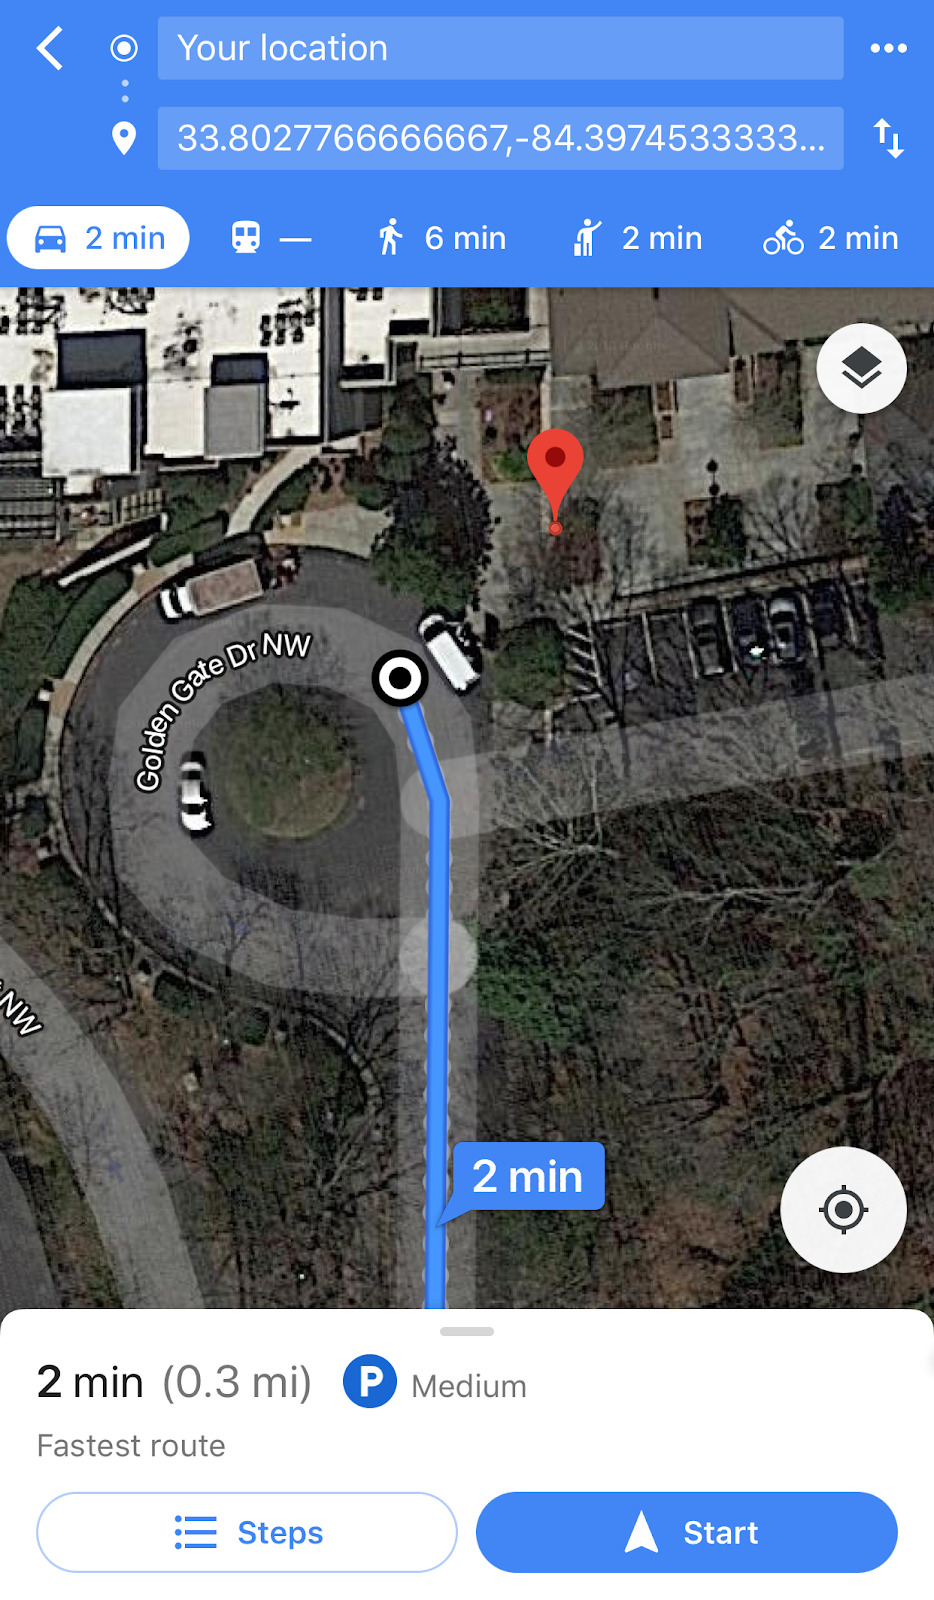 Image of Google Maps satellite view of Bird scooter location